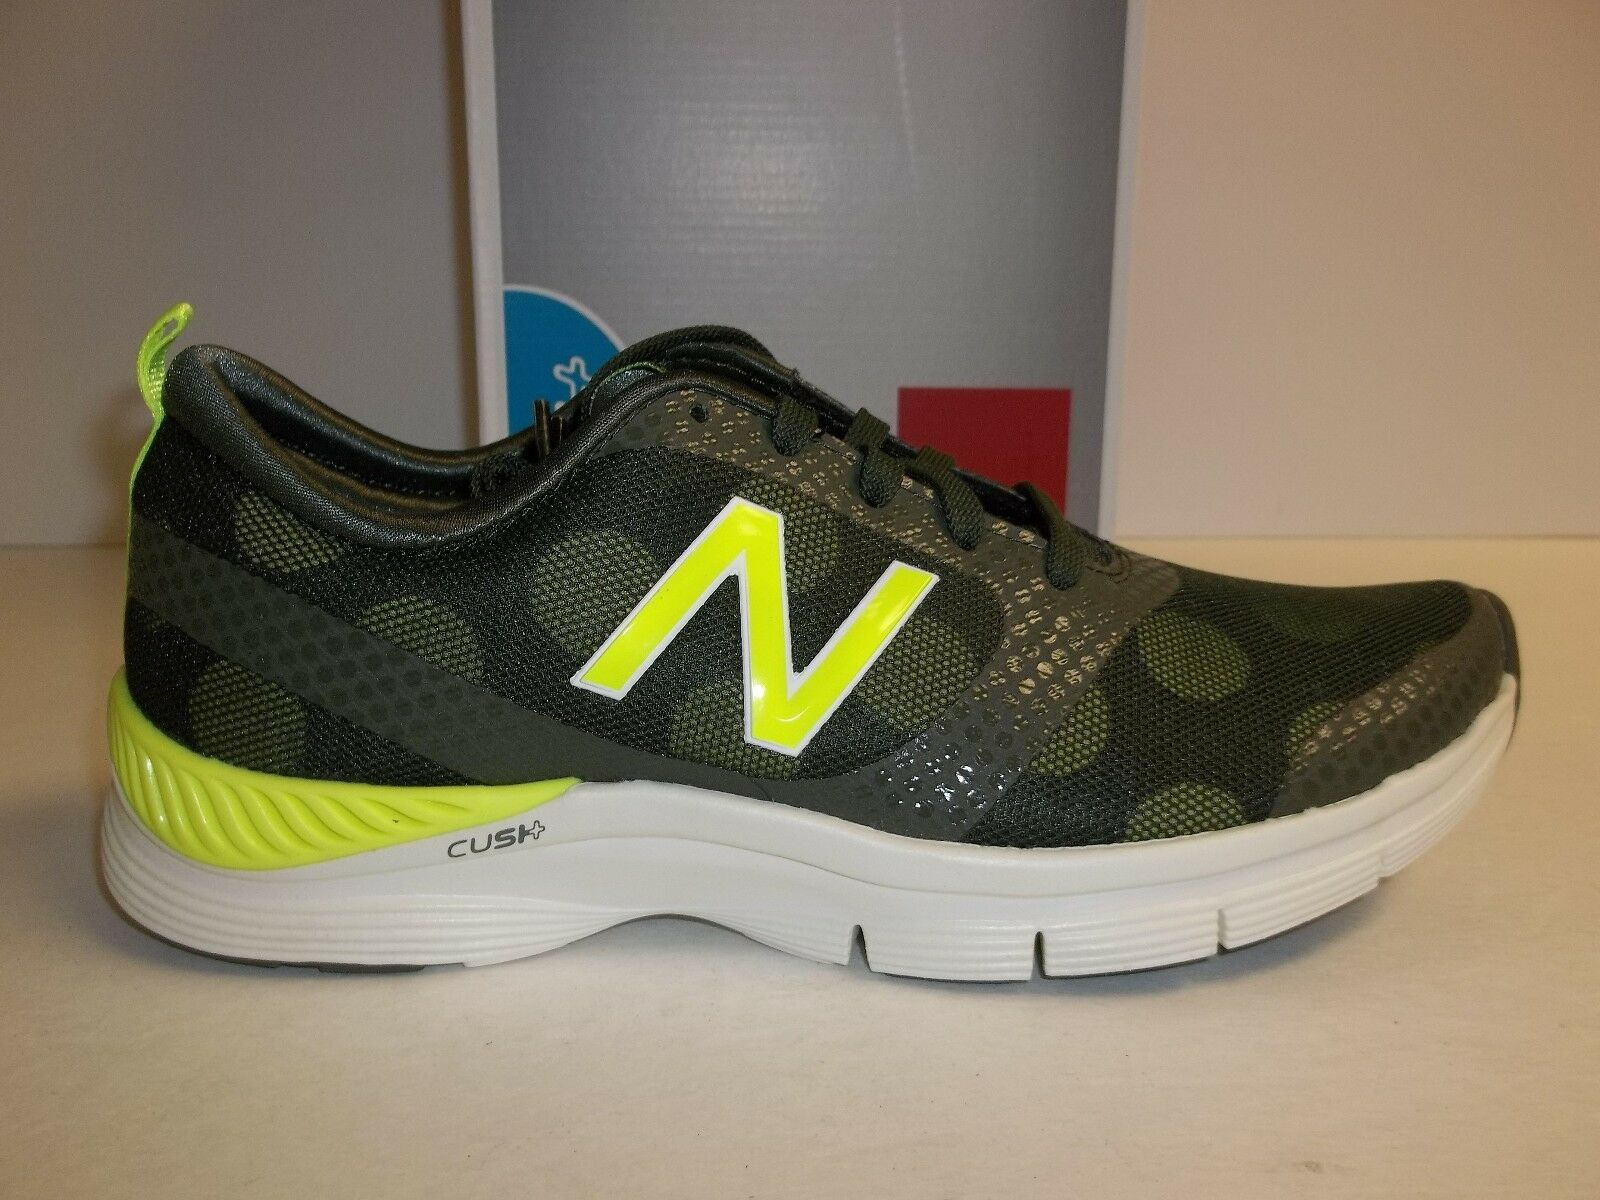 New Balance Size 7 M 711 WX711HD Green Training Sneakers New Womens Shoes NWOB